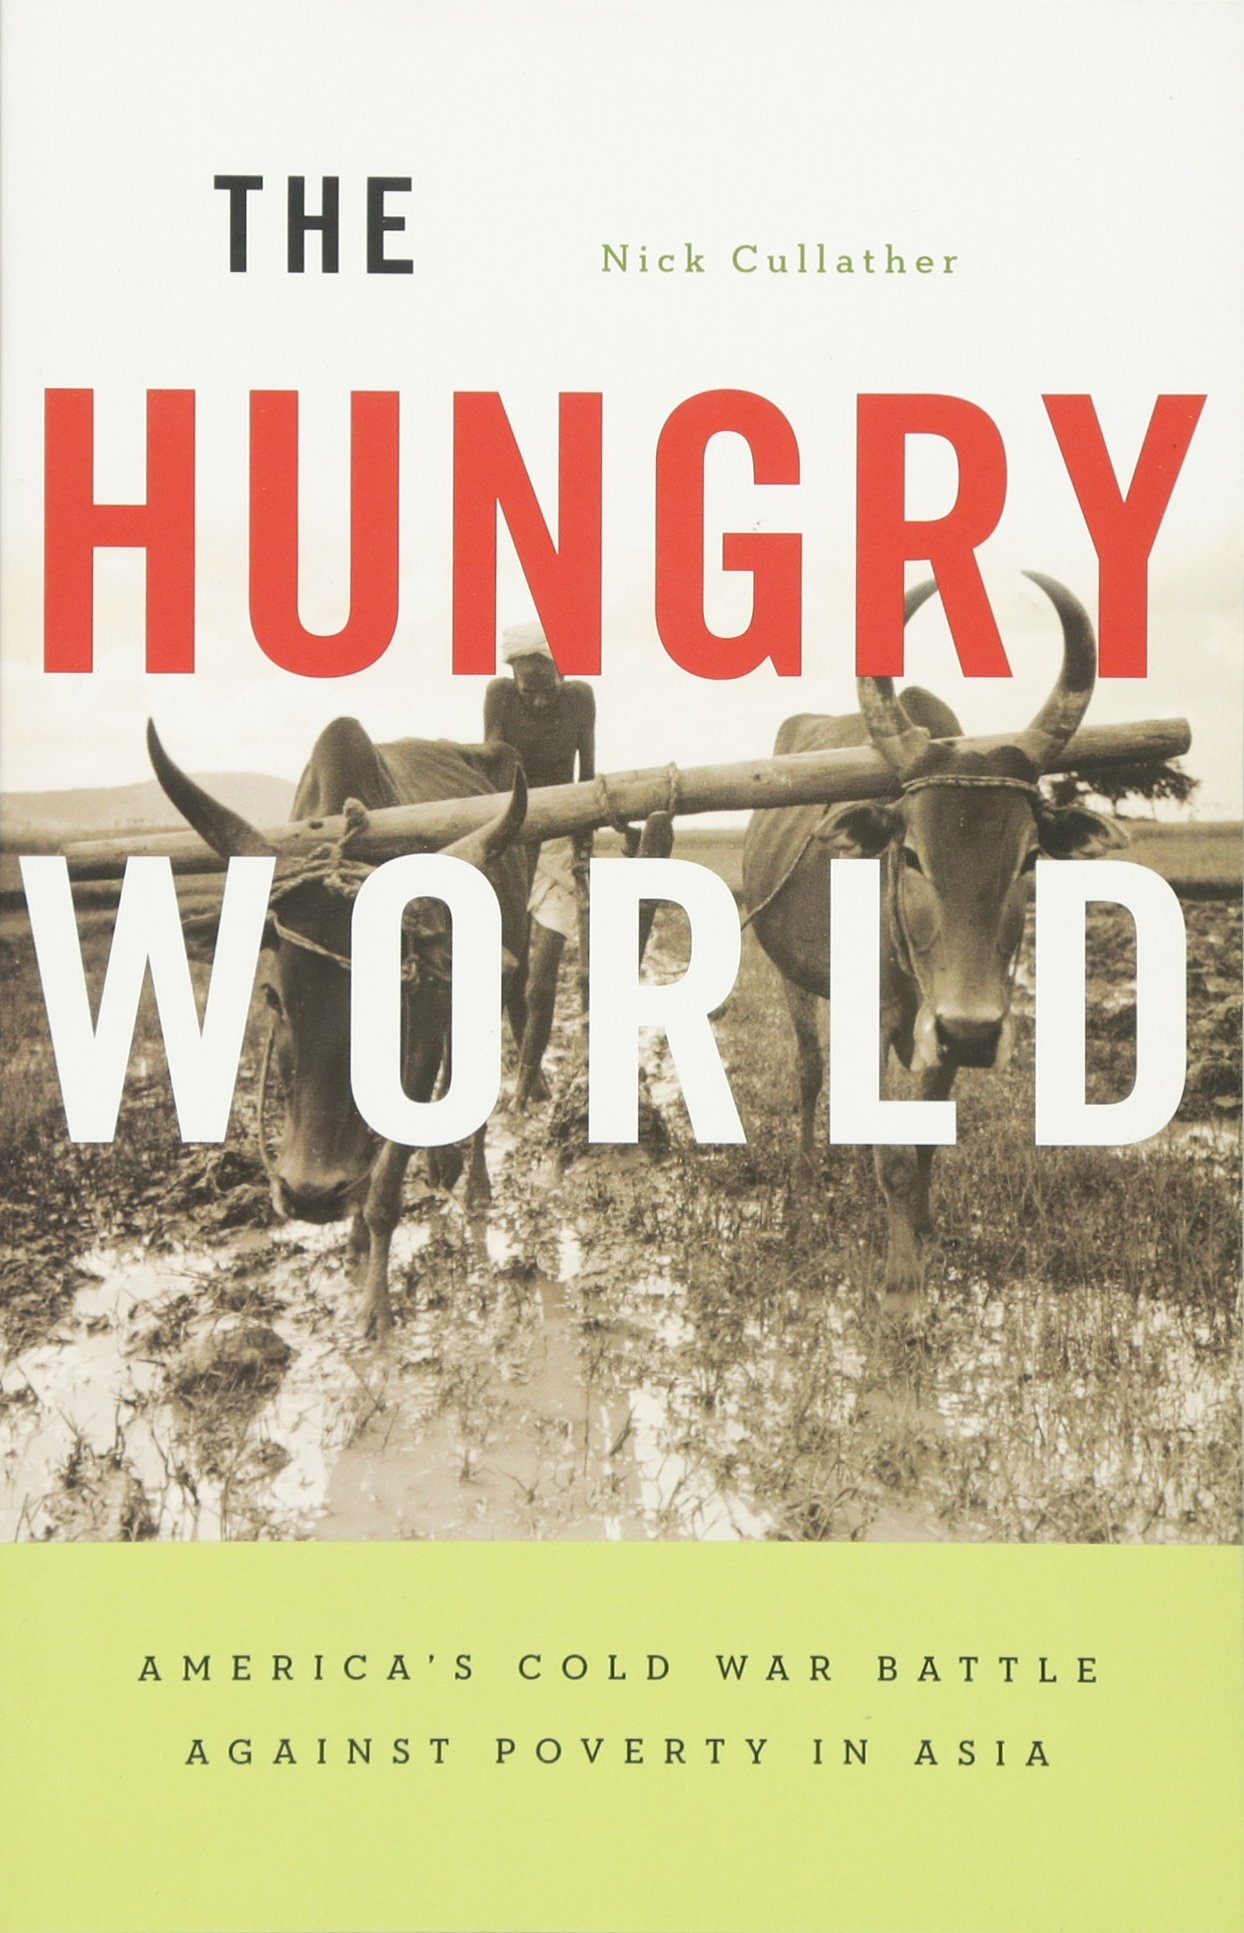 The Hungry World: America's Cold War Battle against Poverty in Asia (Reprint / 1st Harvard University Press Pbk. Ed) pdf